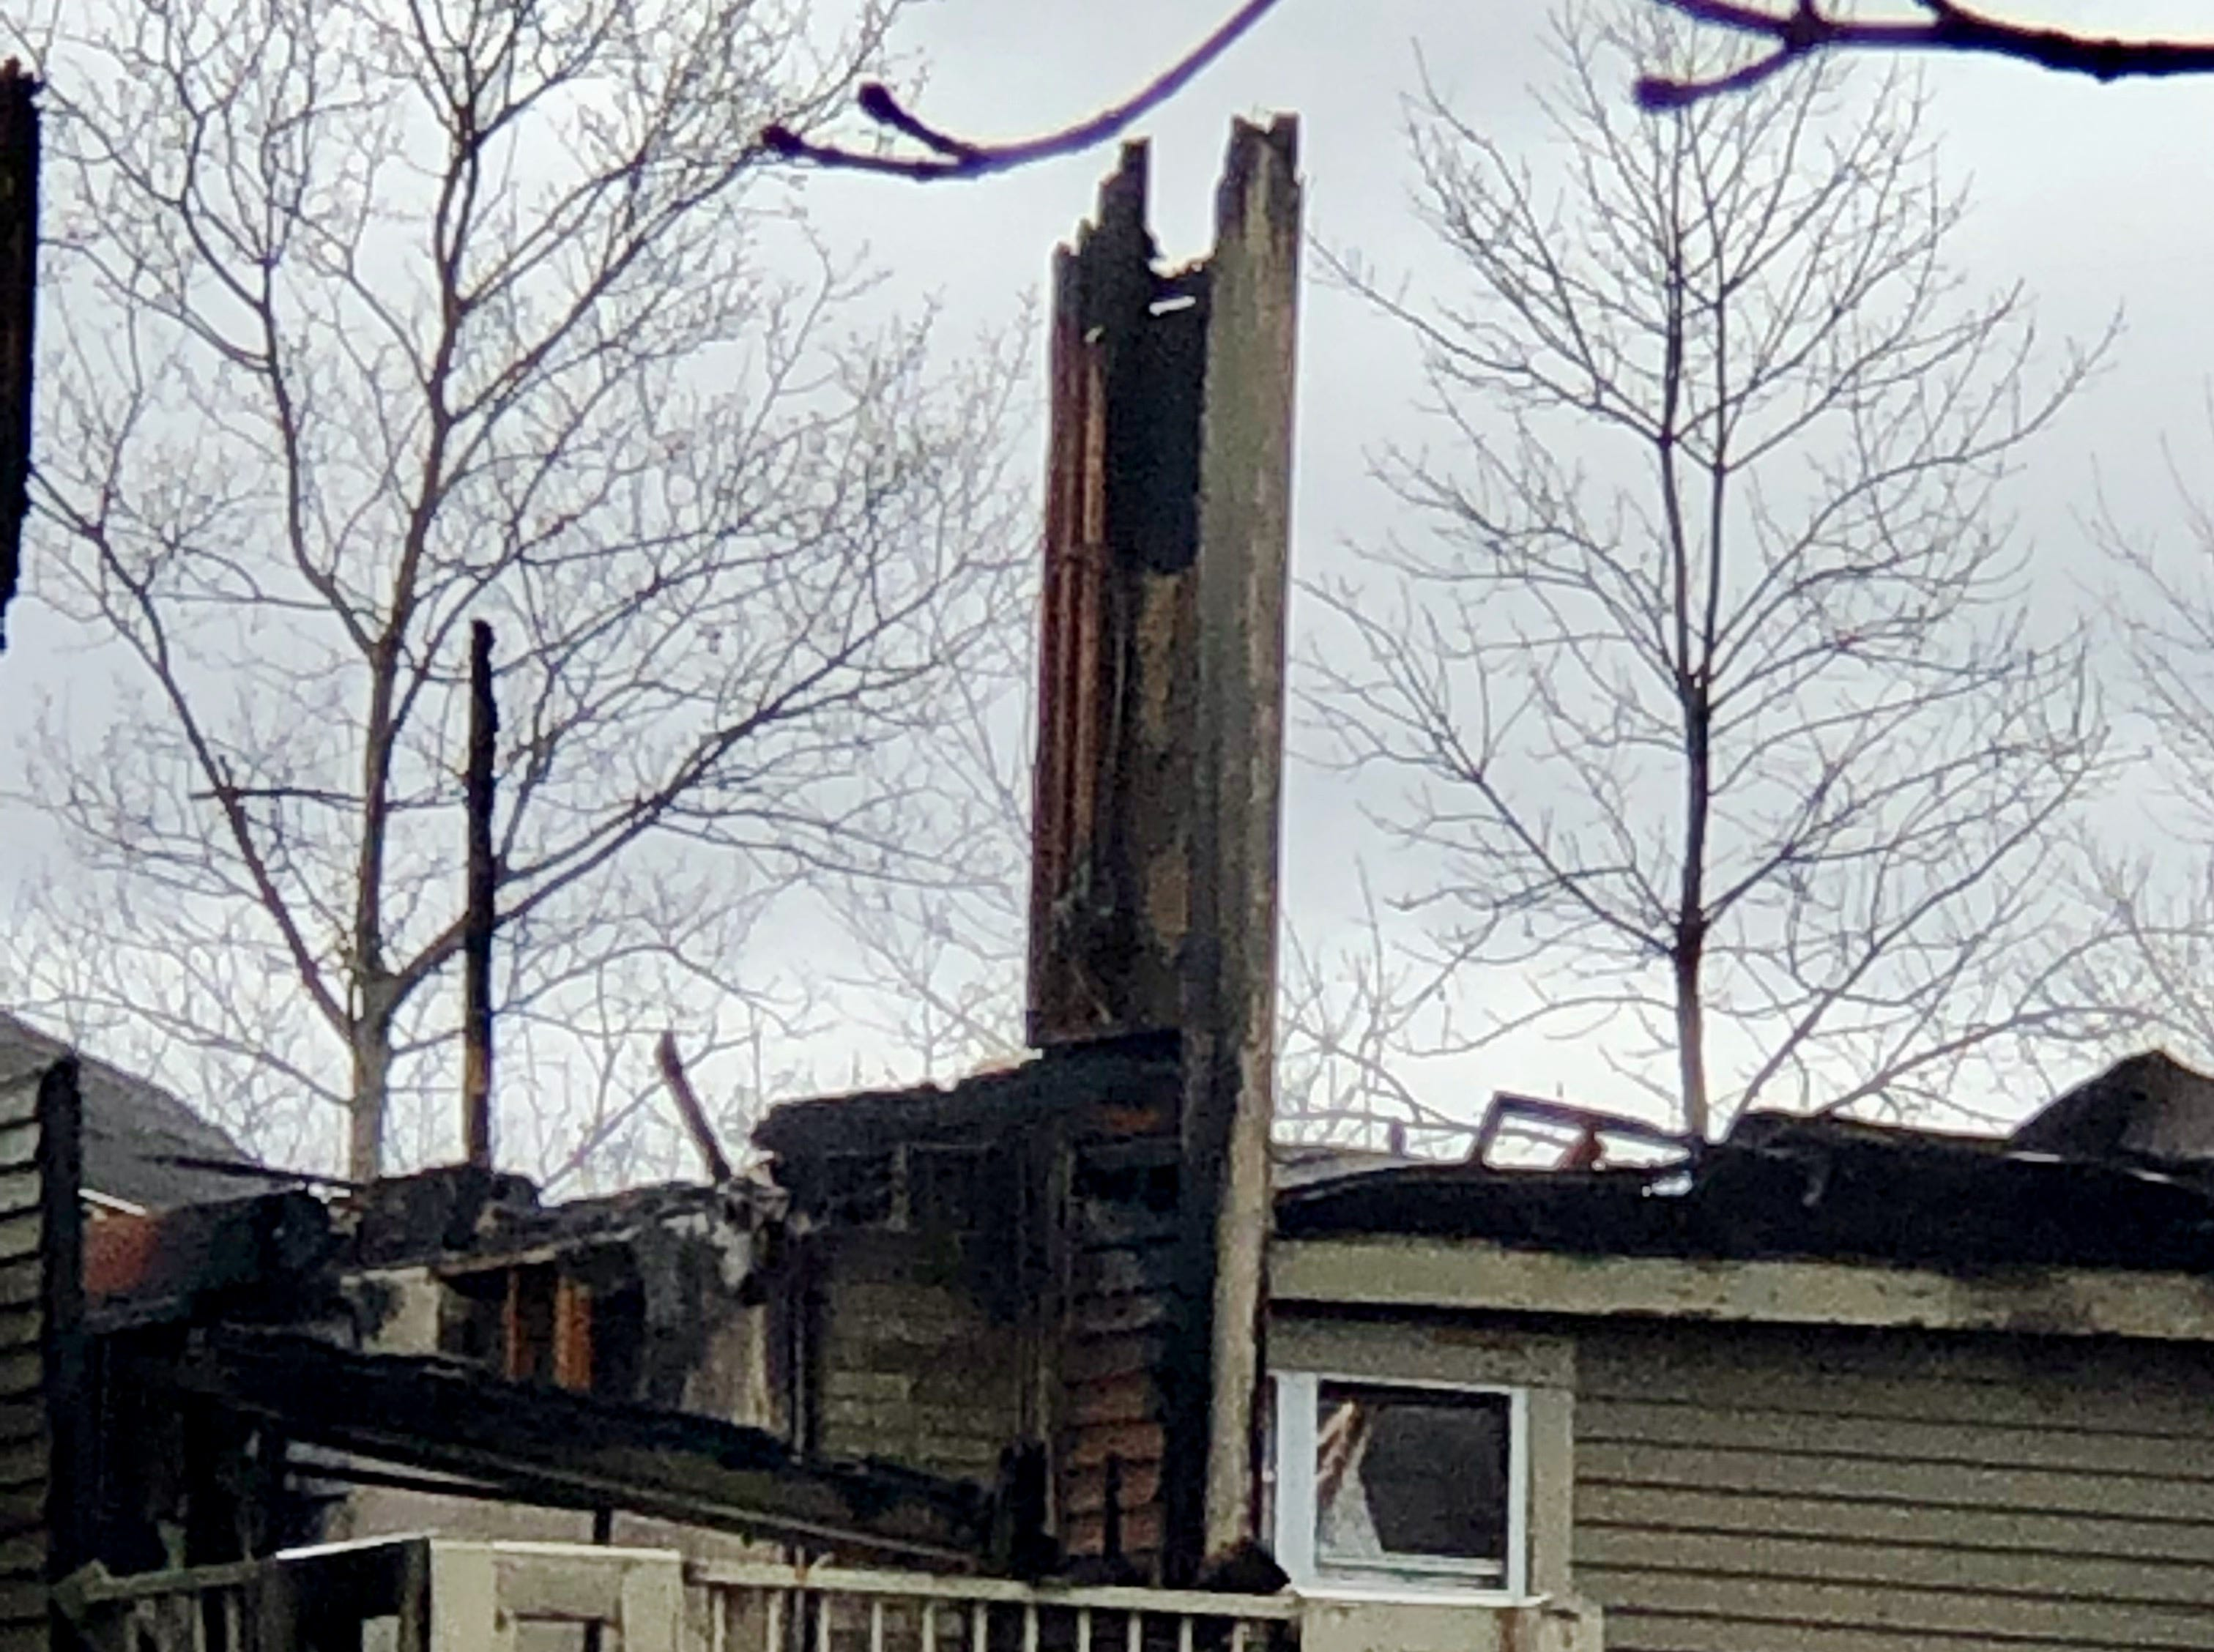 The cause of a fire at White Oaks apartments in Bayside remains under investigation.